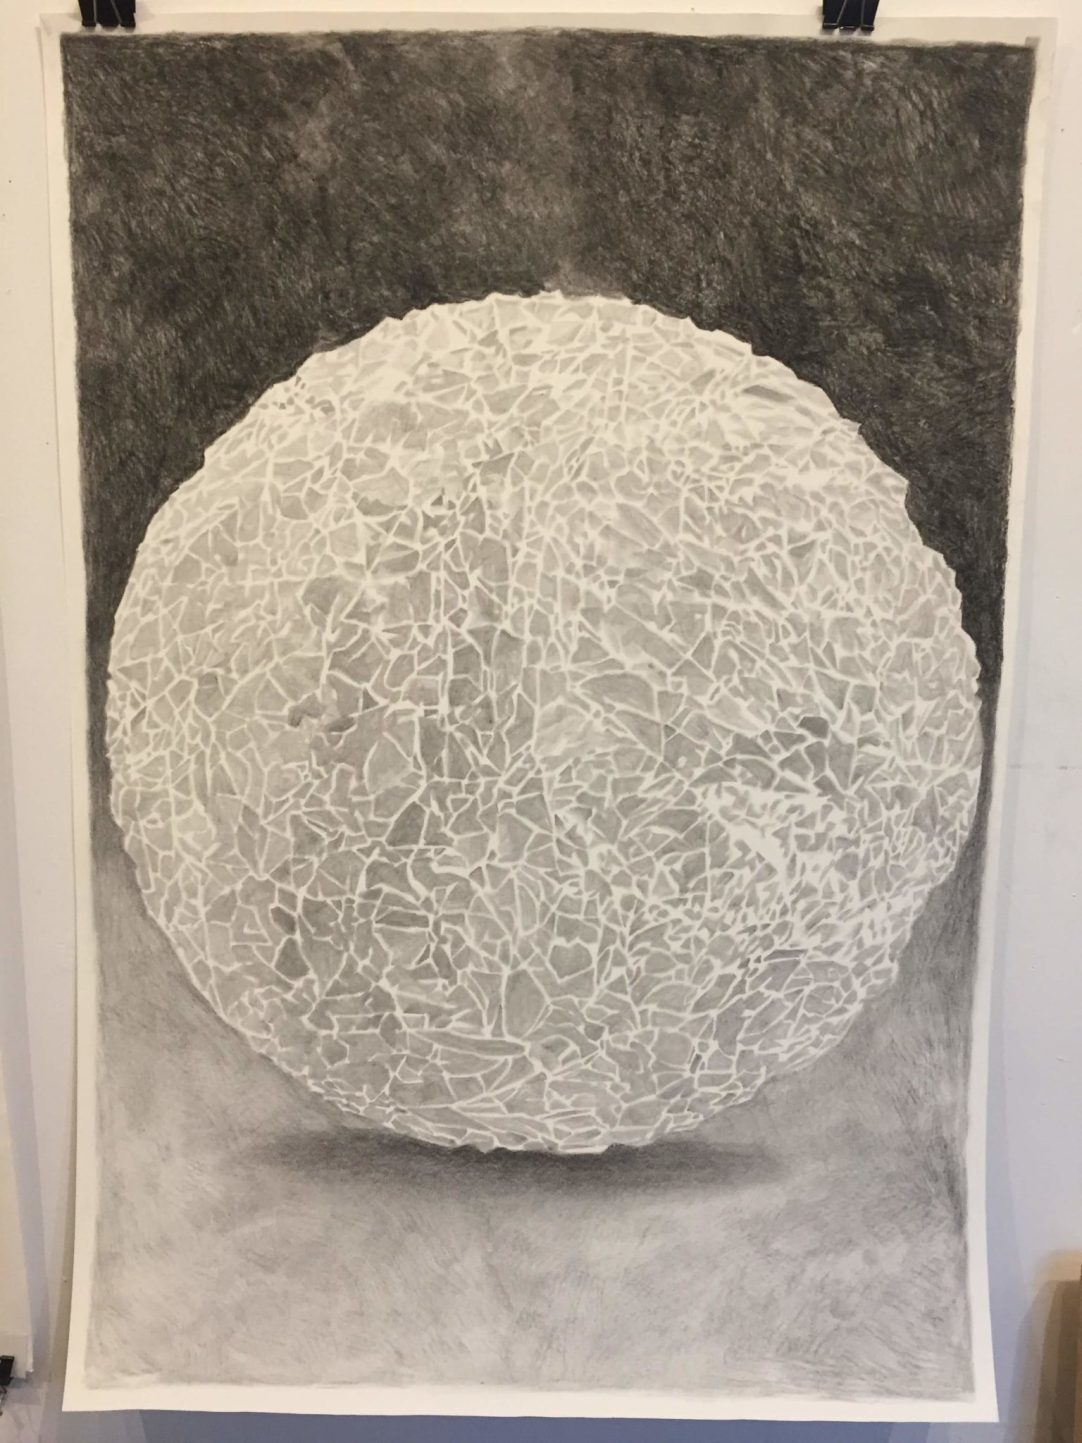 drawing graphite crumpled paper art by Matthew Whitney